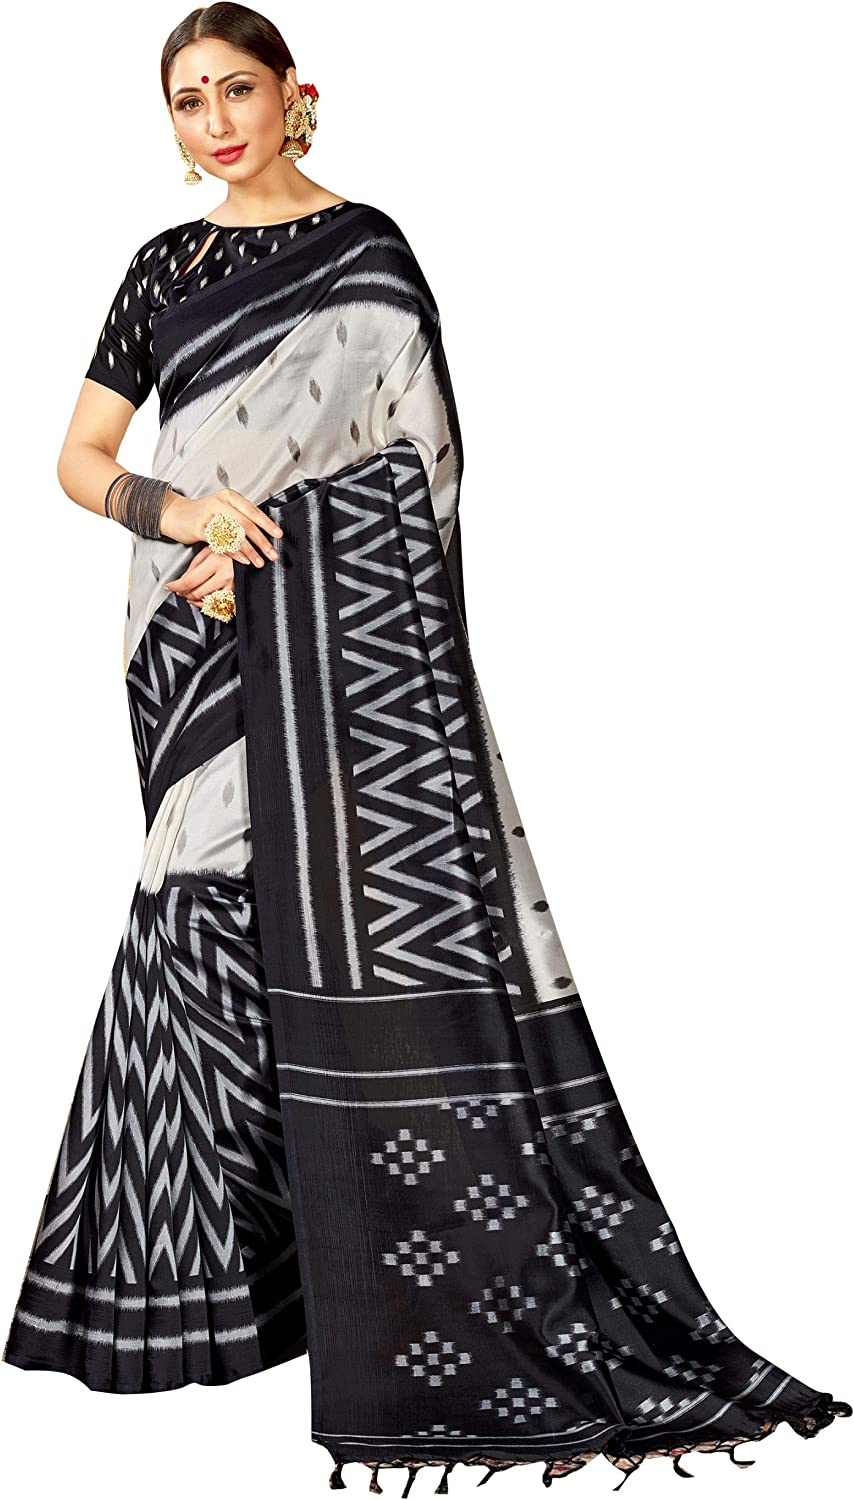 Elina fashion Saree for Women Cotton Art Silk Sarees for Indian Wedding Gift, Sari and Unstitched Blouse Piece